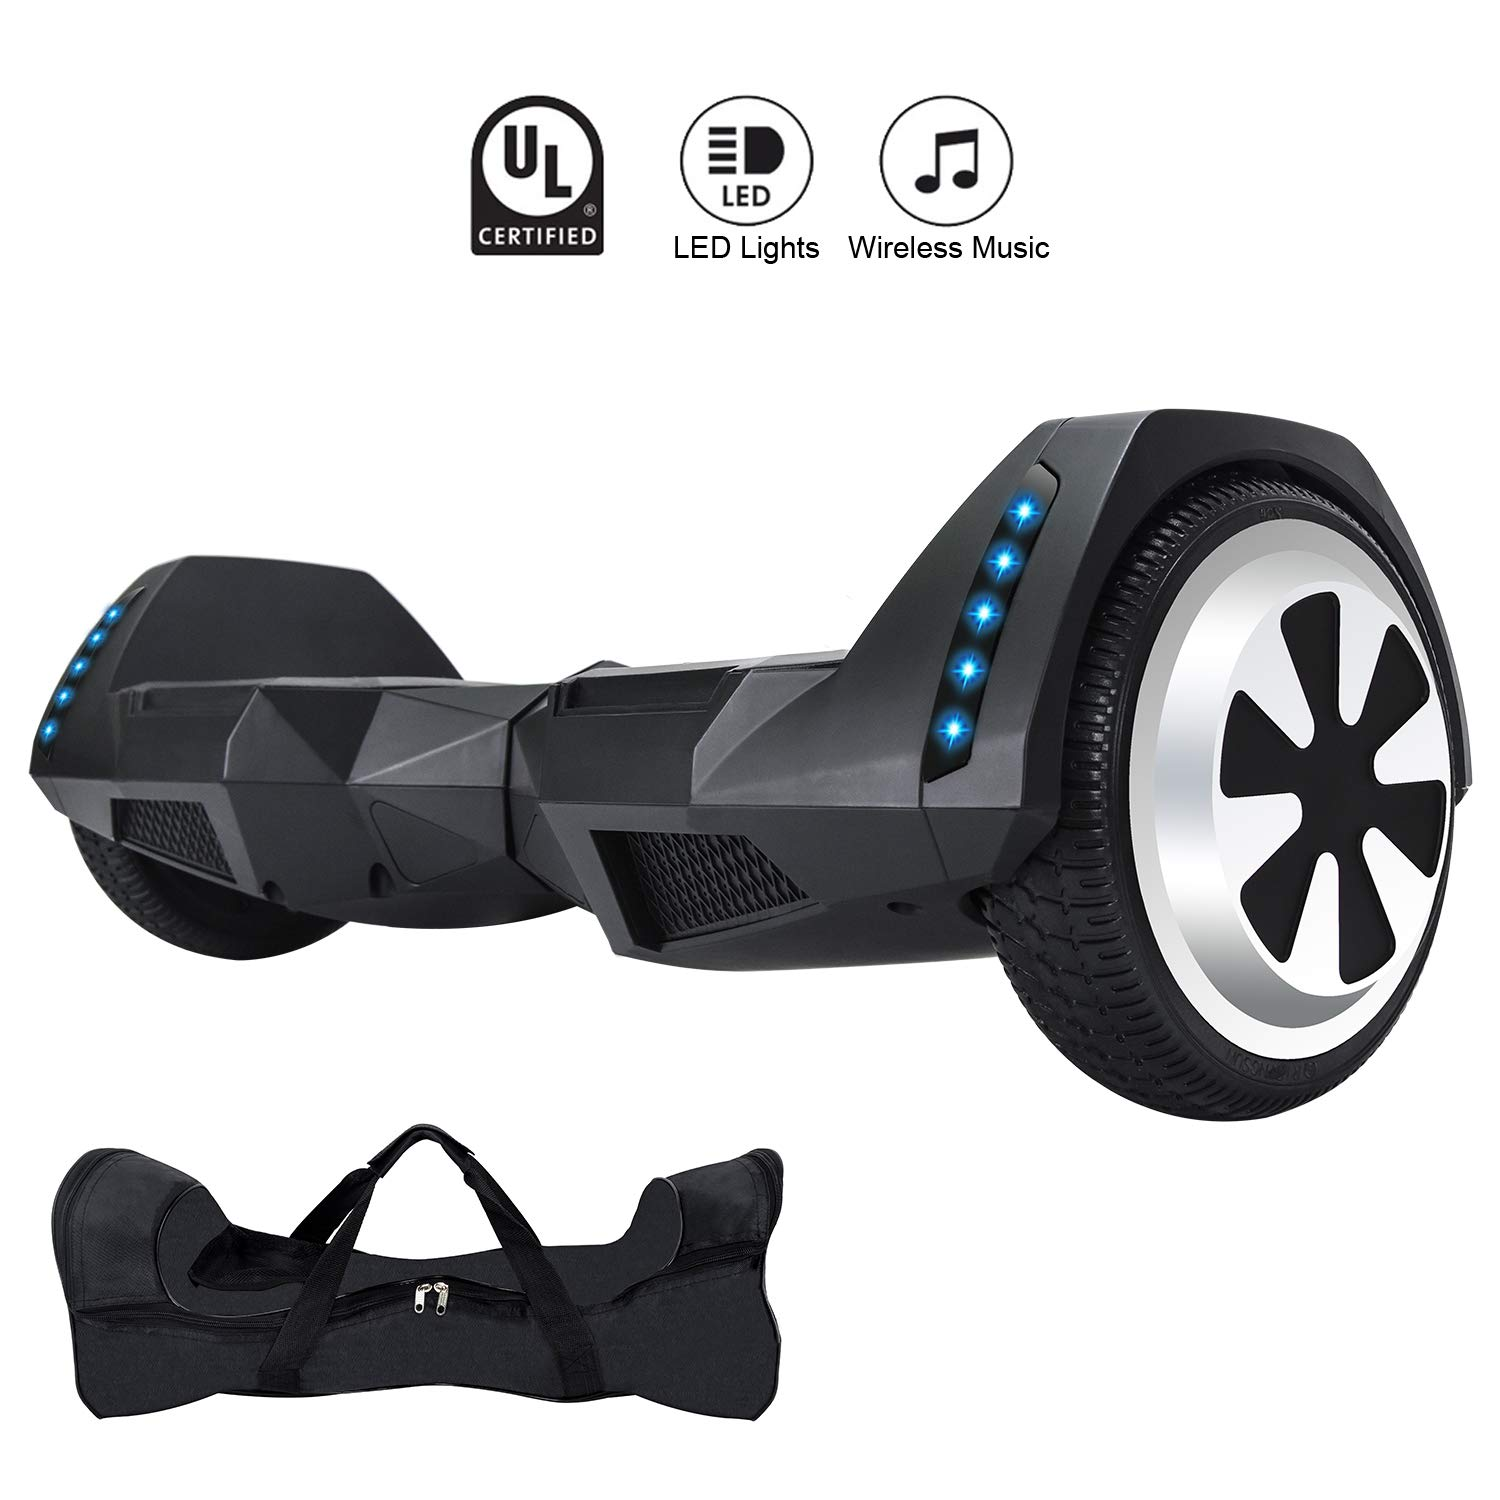 CXM2018 Bluetooth Enabled 6.5 inch Self Balancing Hoverboard with Built-in Wireless Speaker,250Watt Dual Motors and LED Side Lights for Kids and Adults,UL 2272 Certified Electric Scooter (Jade Black)